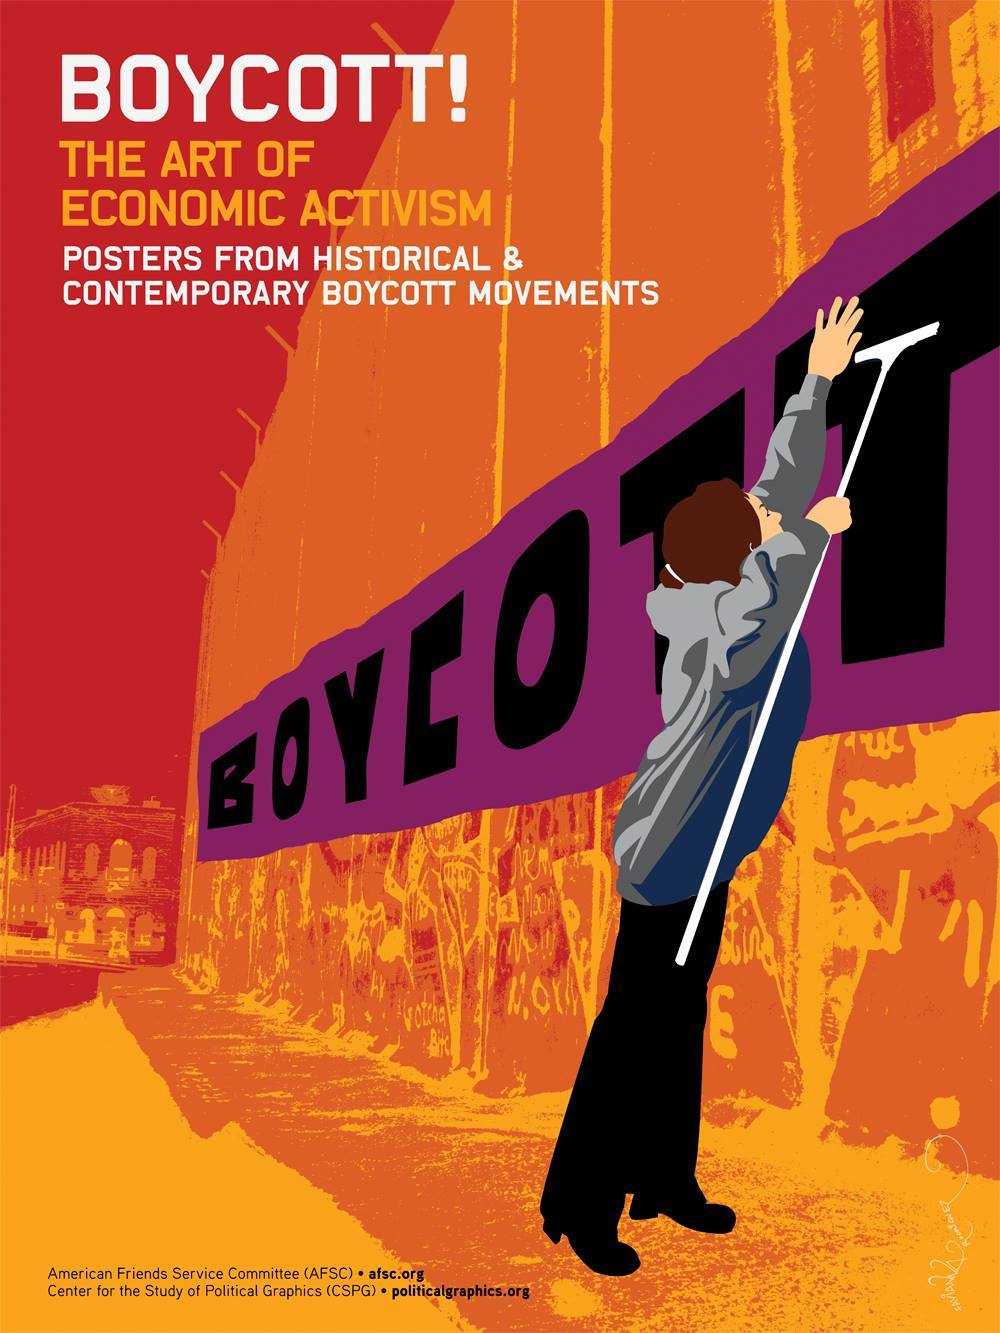 """""""Boycott! The Art of Economic Activism""""  is a traveling poster exhibition that highlights historical boycott movements from the 1950s to the present.  The exhibit, created by AFSC and the Center for the Study of Political Graphics, features 59 posters from more than 20 boycotts, including the Montgomery Bus Boycott, United Farm Workers' grape and lettuce boycott, divestment from South Africa to protest Apartheid, boycotts of corporations using sweatshops, the Palestinian call for Boycott, Divest and Sanctions, and many others  Exhibit - March 8 - March 27  Sun. March 8th: 3-7pm- Boycott Exhibit opening reception with presentation by the AFSC.   Tues. March 10th at 7pm: Keynote Presentation by three young Palestinian woman from Gaza and the West Bank.   Thurs. March 26th at 7pm: Keynote presentation by Rabbi Brant Rosen, AFSC Midwest Regional Director  Free, All Ages"""